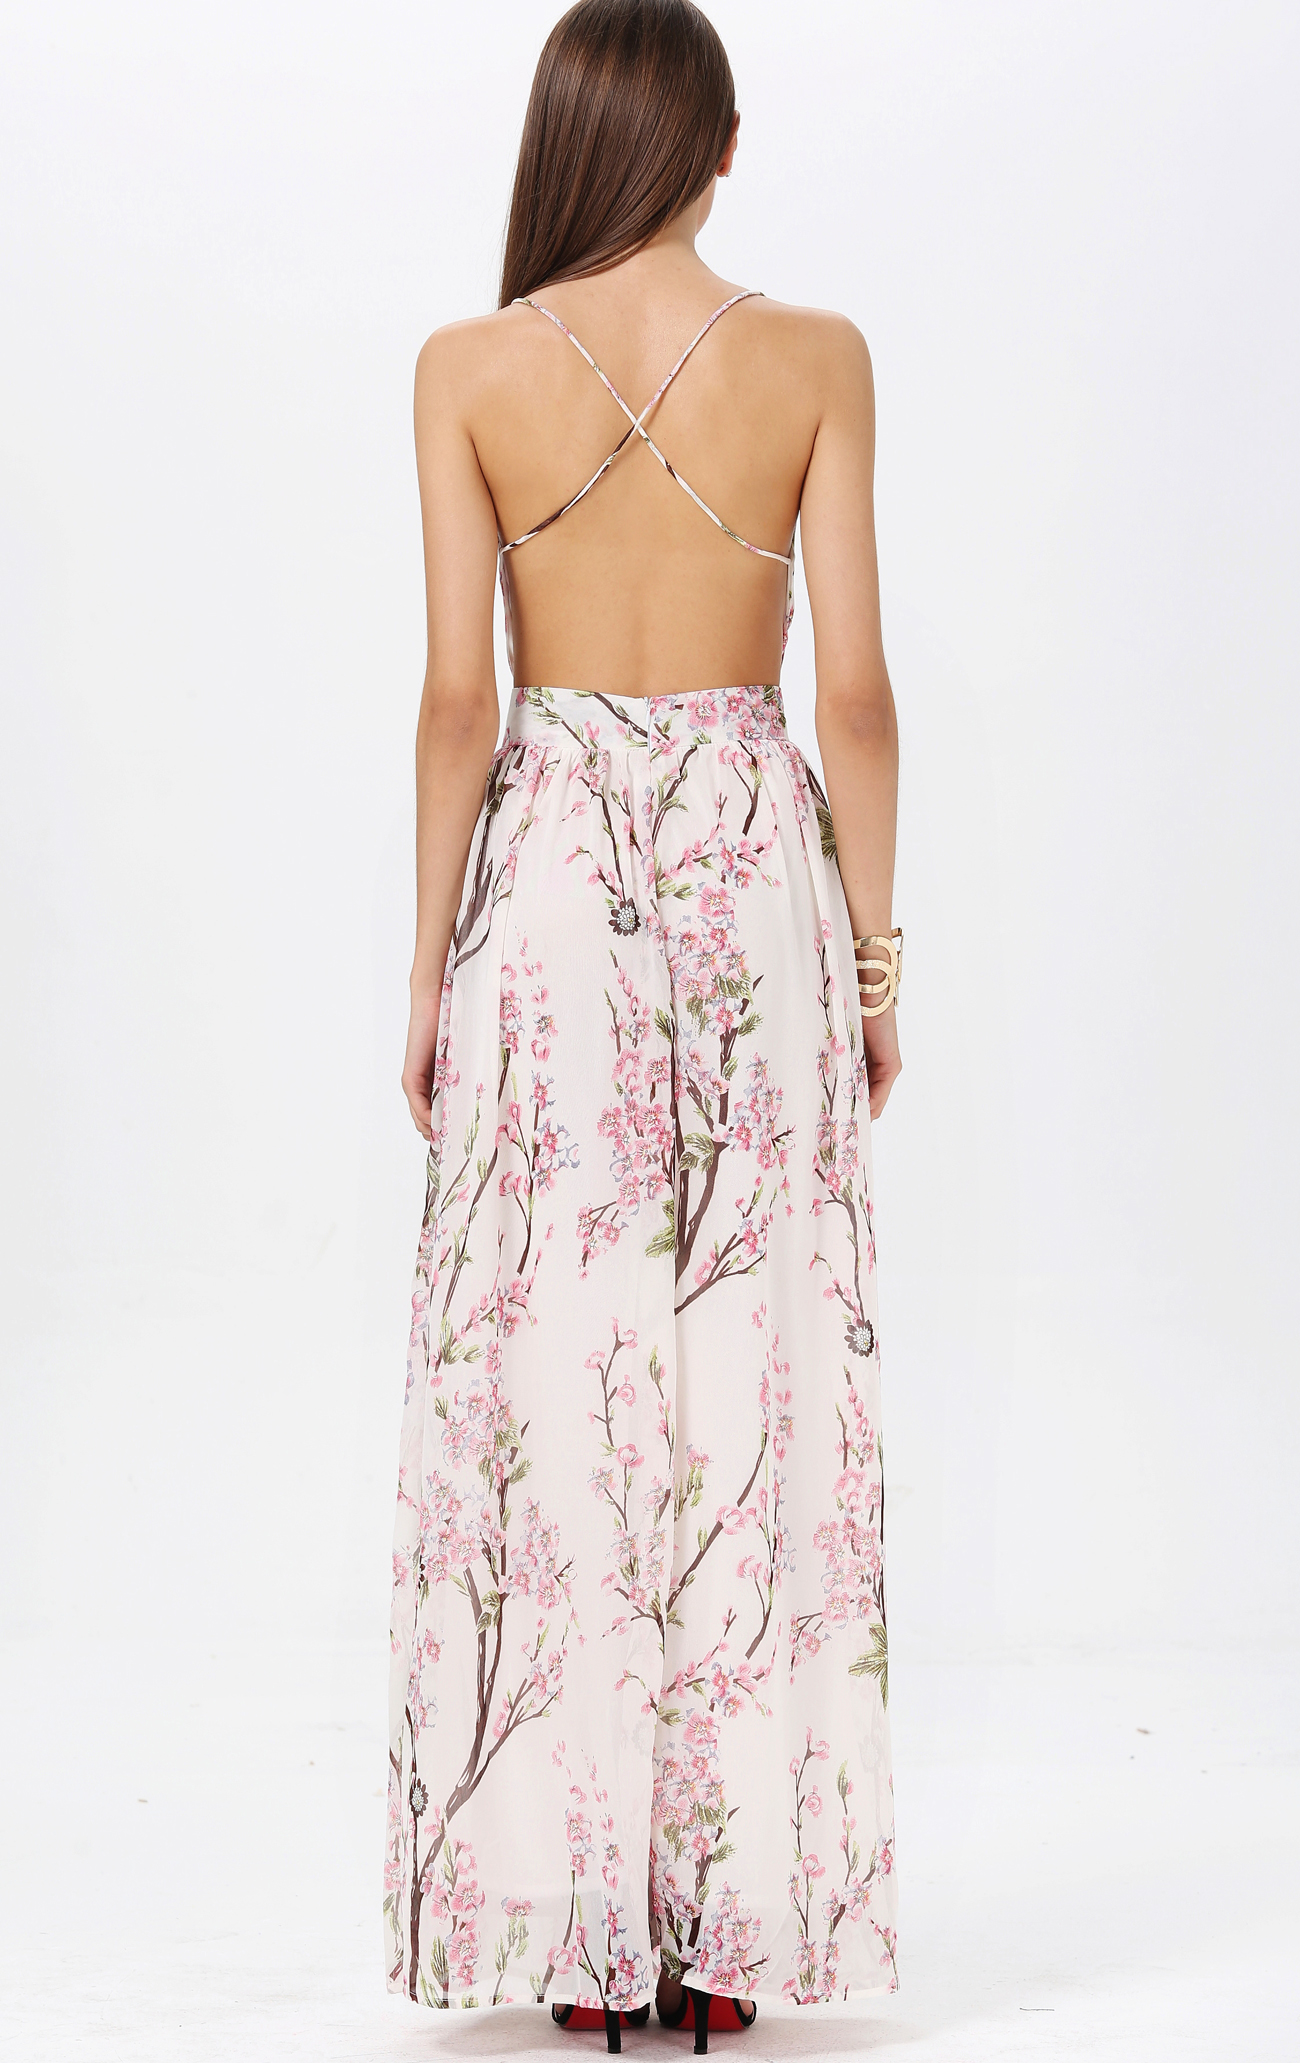 Neck spaghetti straps backless maxi dress